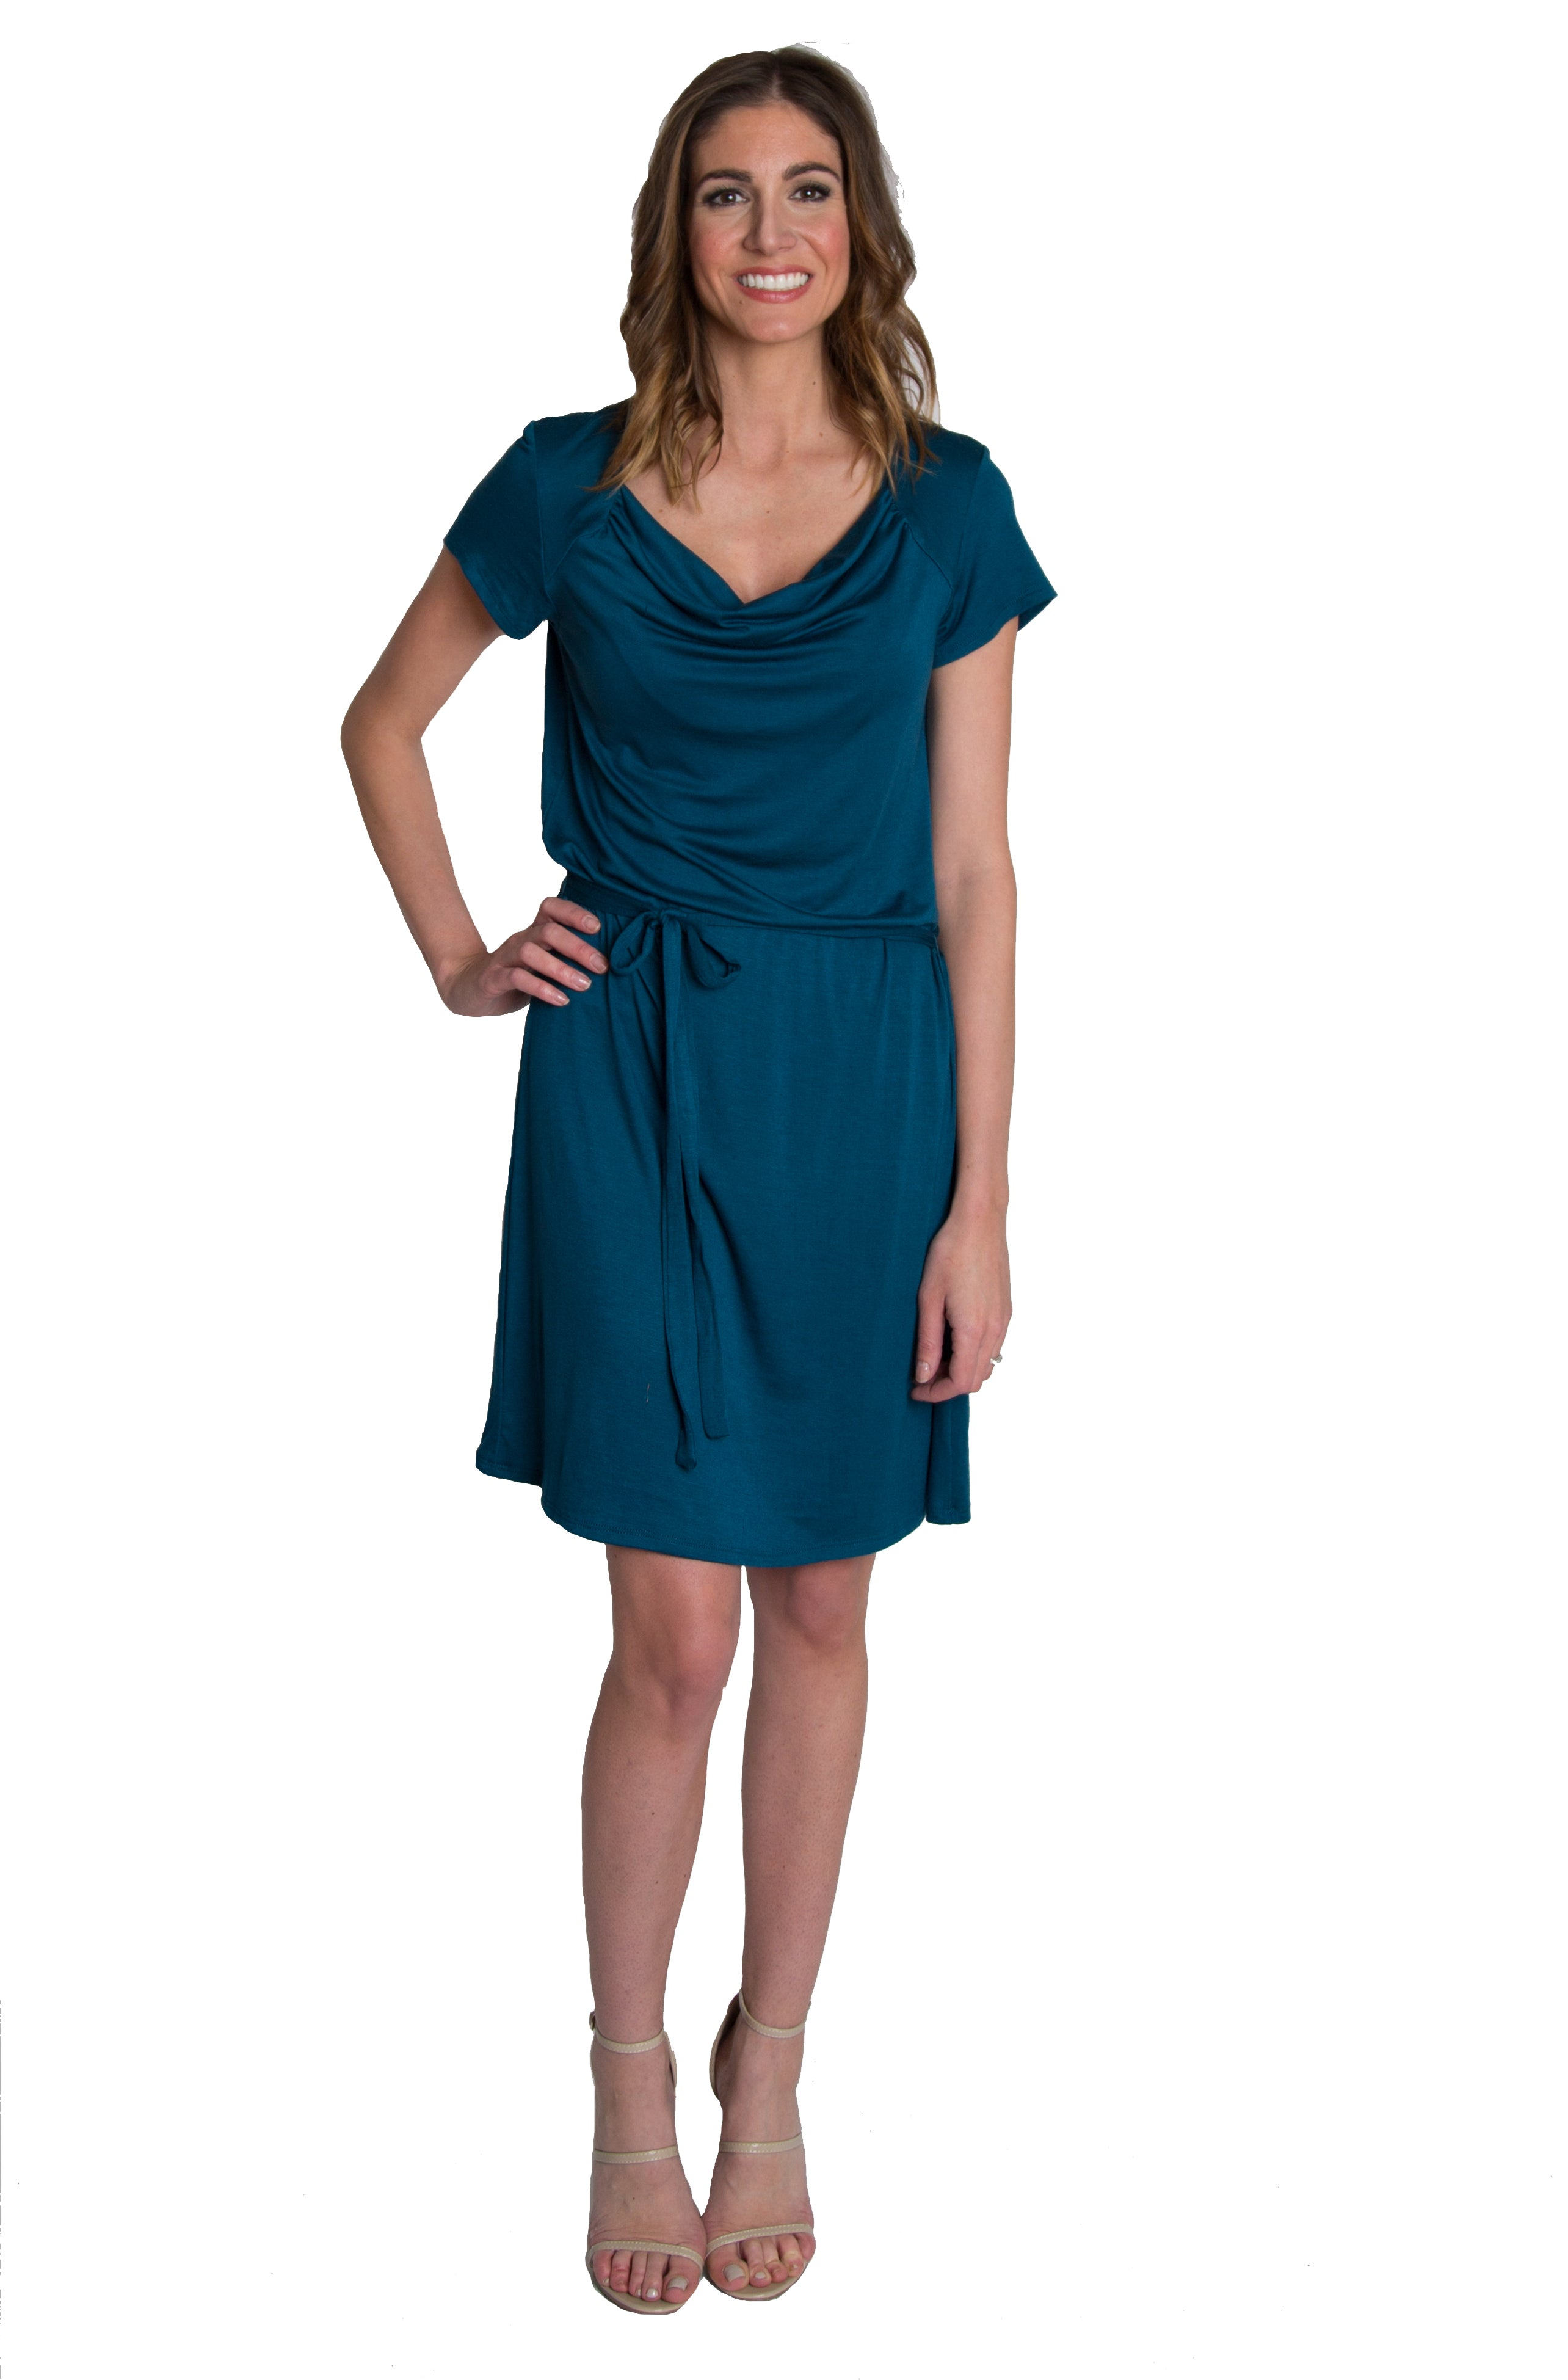 Chic nursing dress in teal by Udderly Hot Mama